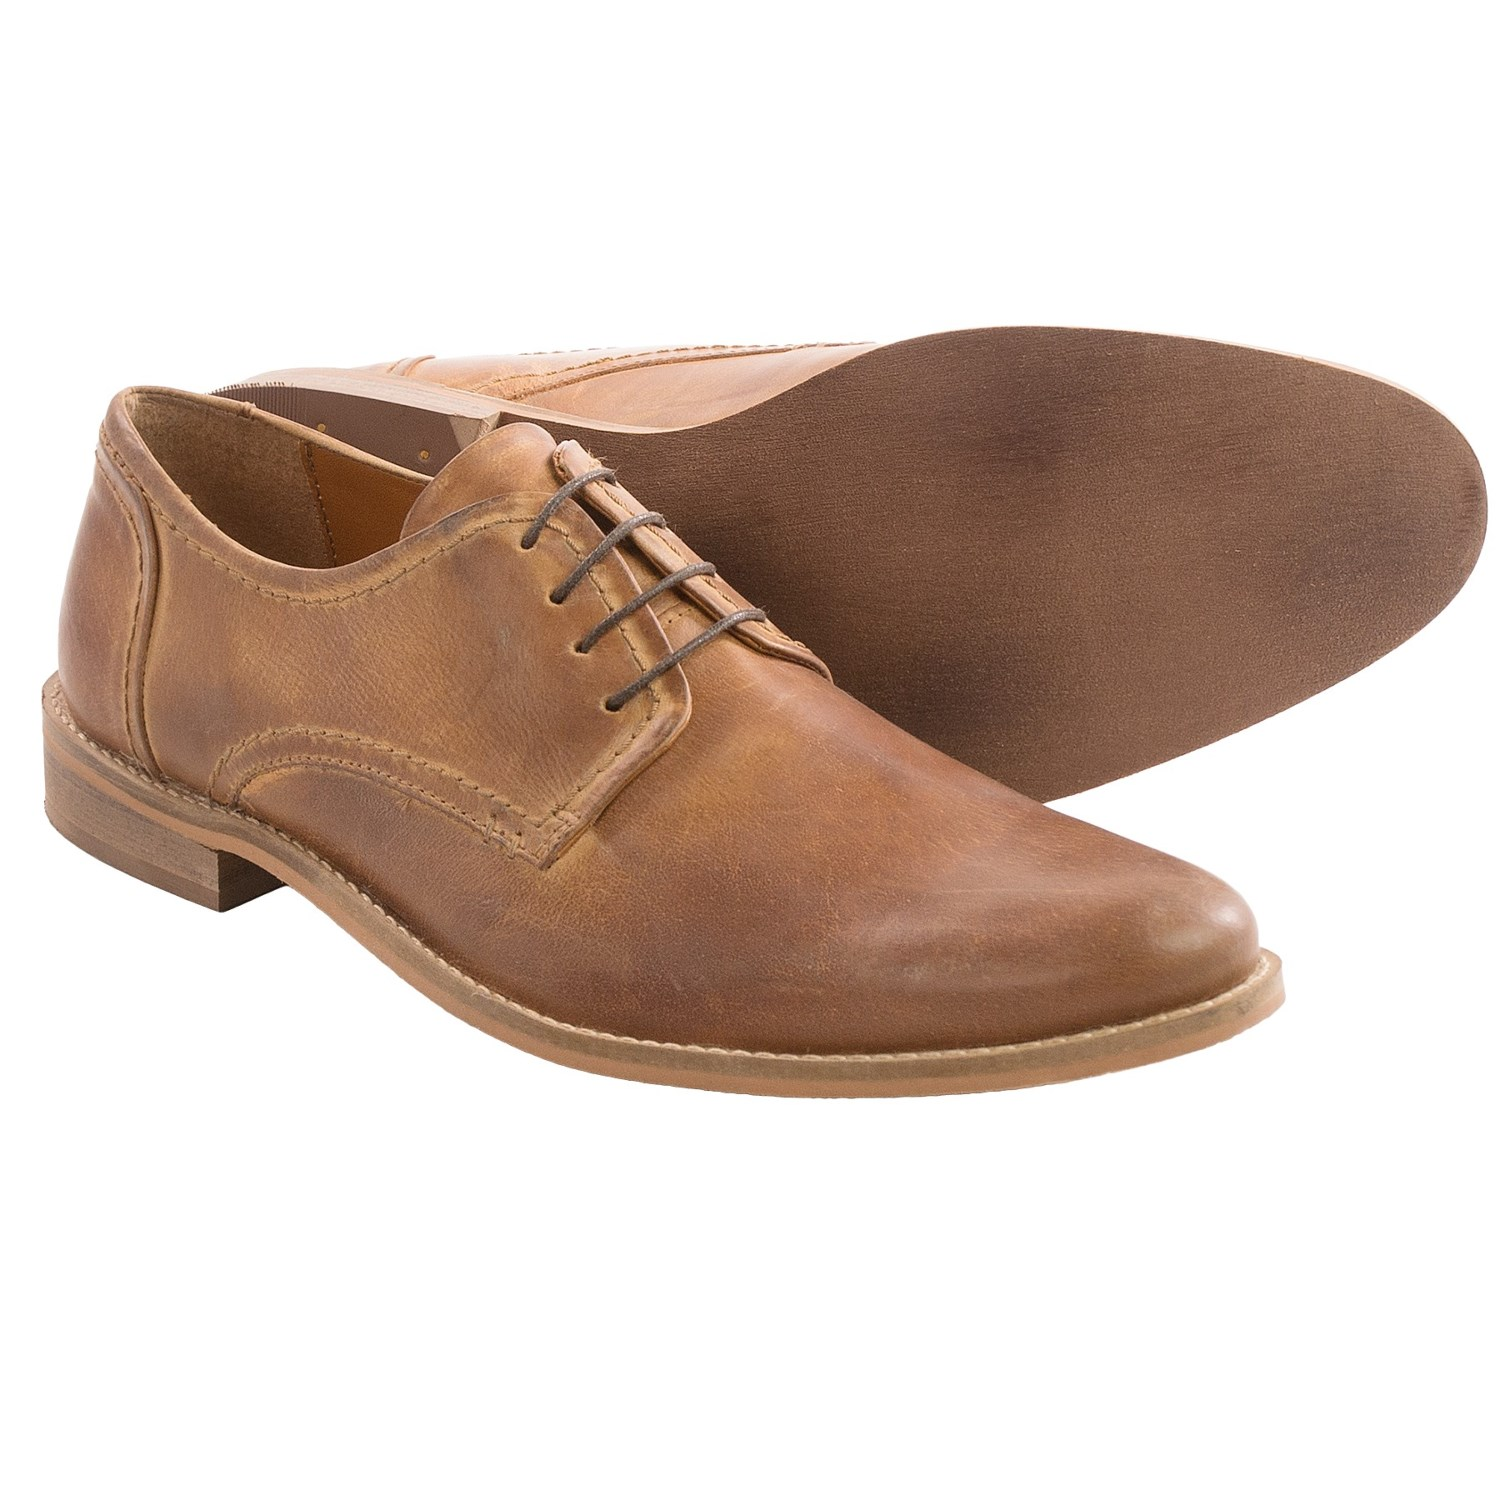 steve madden forwardd oxford shoes leather for in